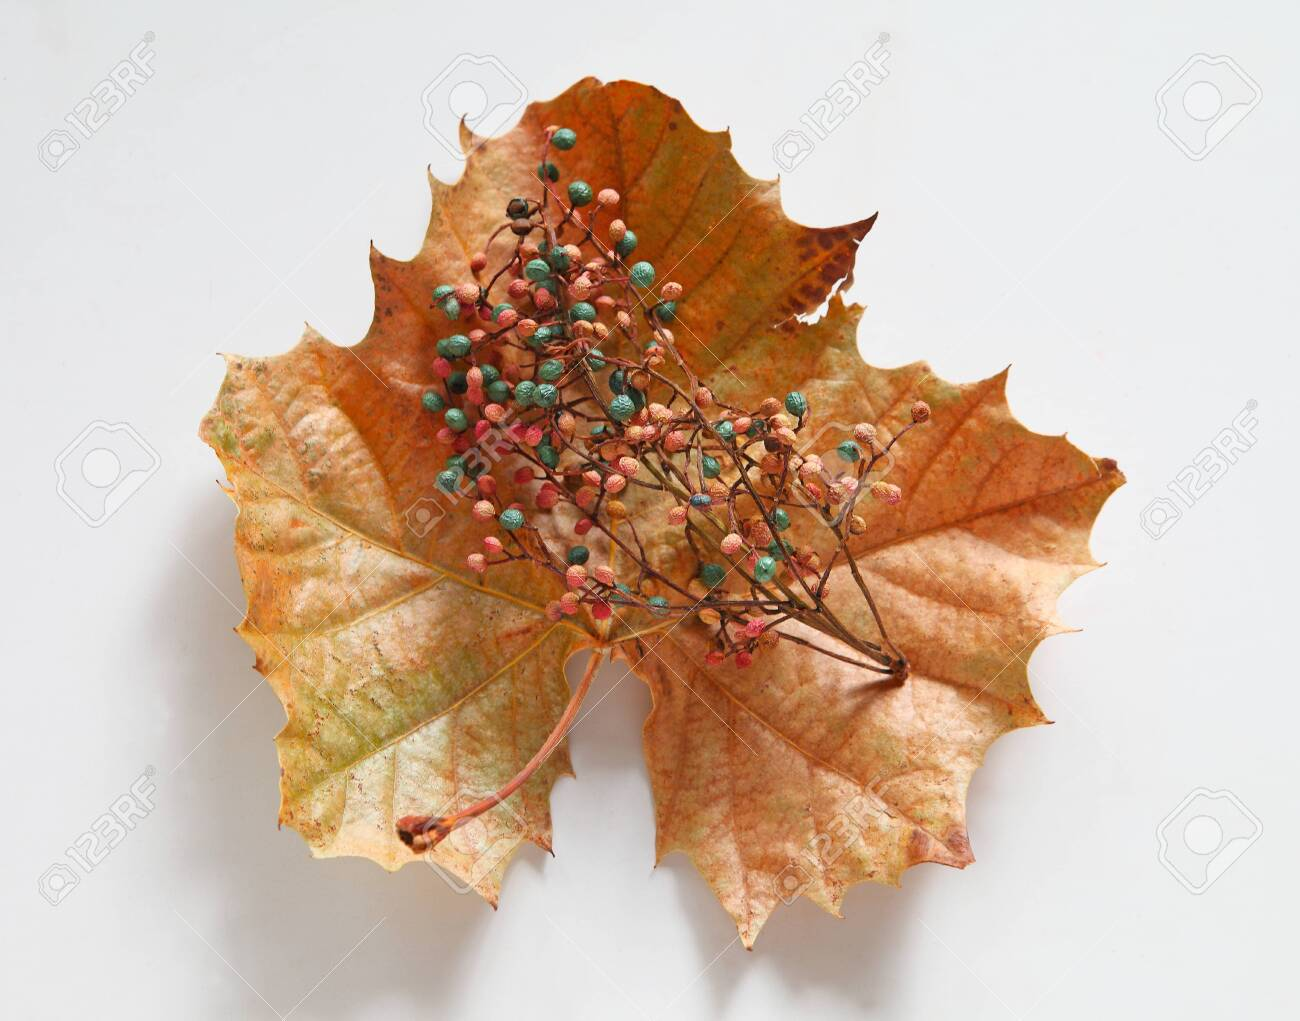 Pale pink and blue berries on a dried sycamore leaf in fall - 141340057